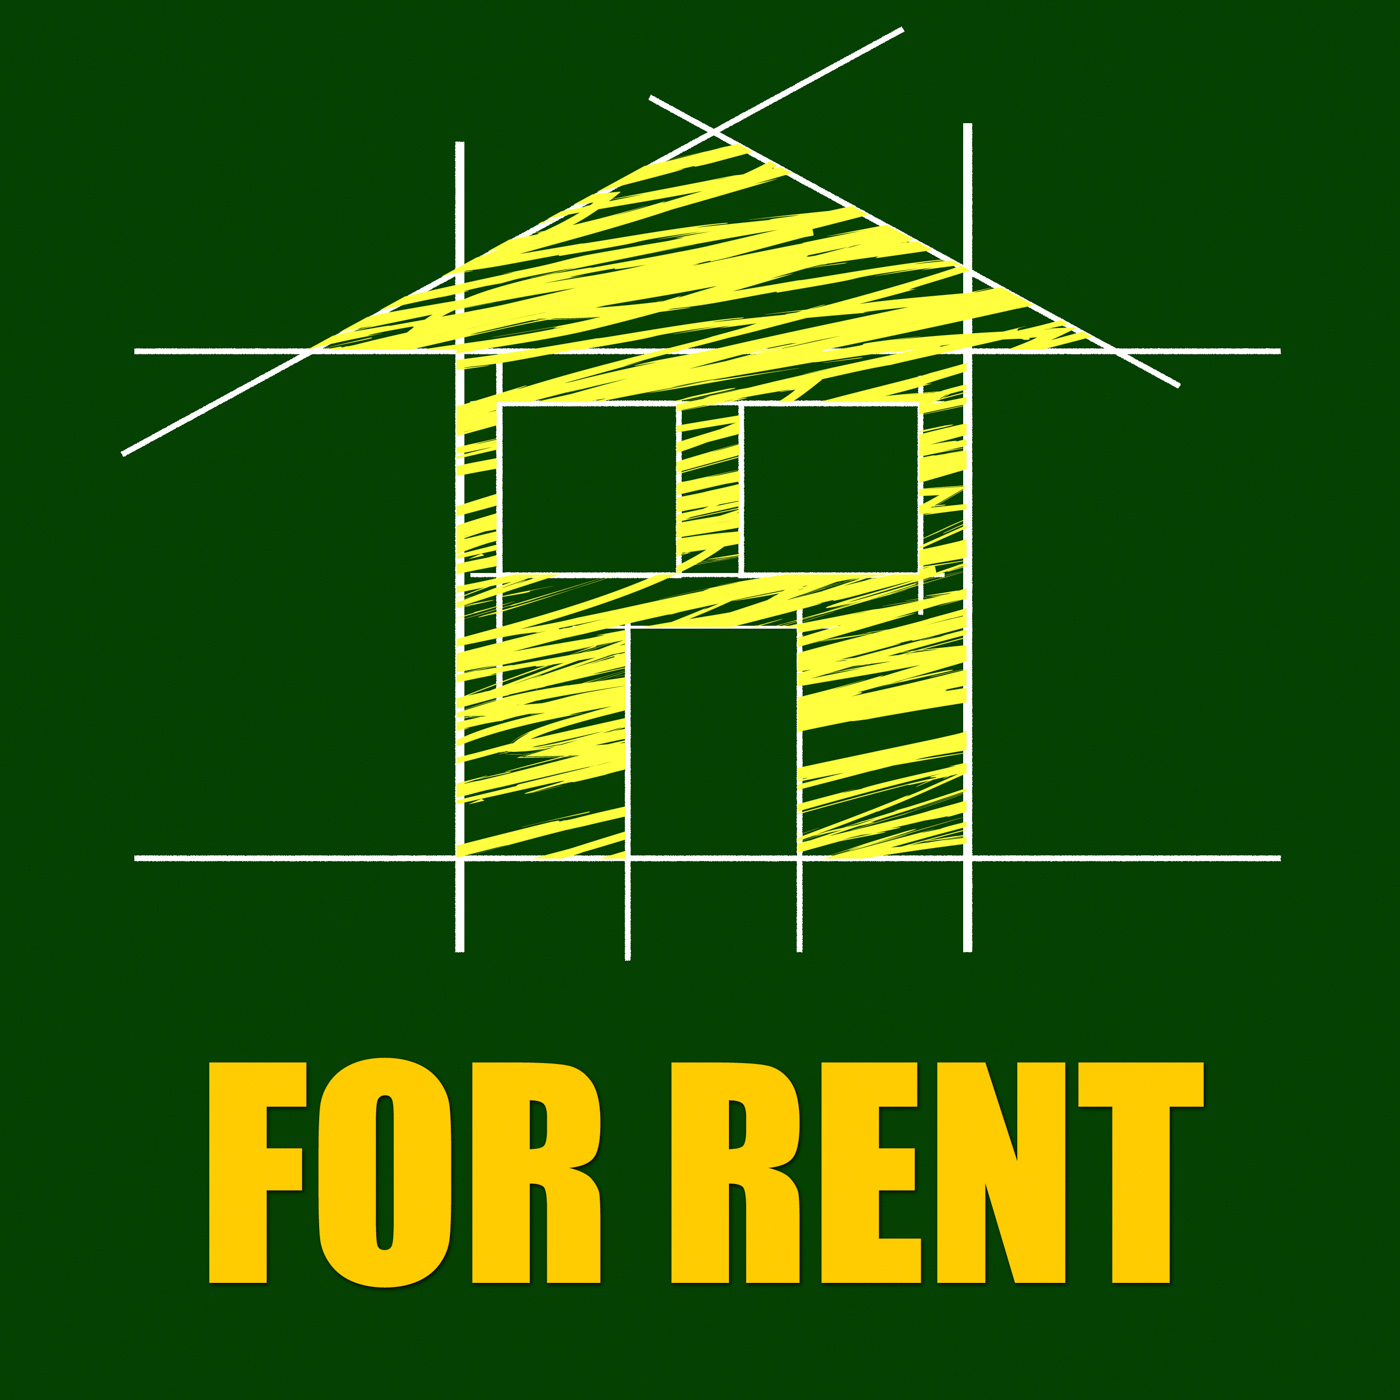 For Rent Represents Detail Architecture And Housing, Apartment, House, Scheme, Residential, HQ Photo